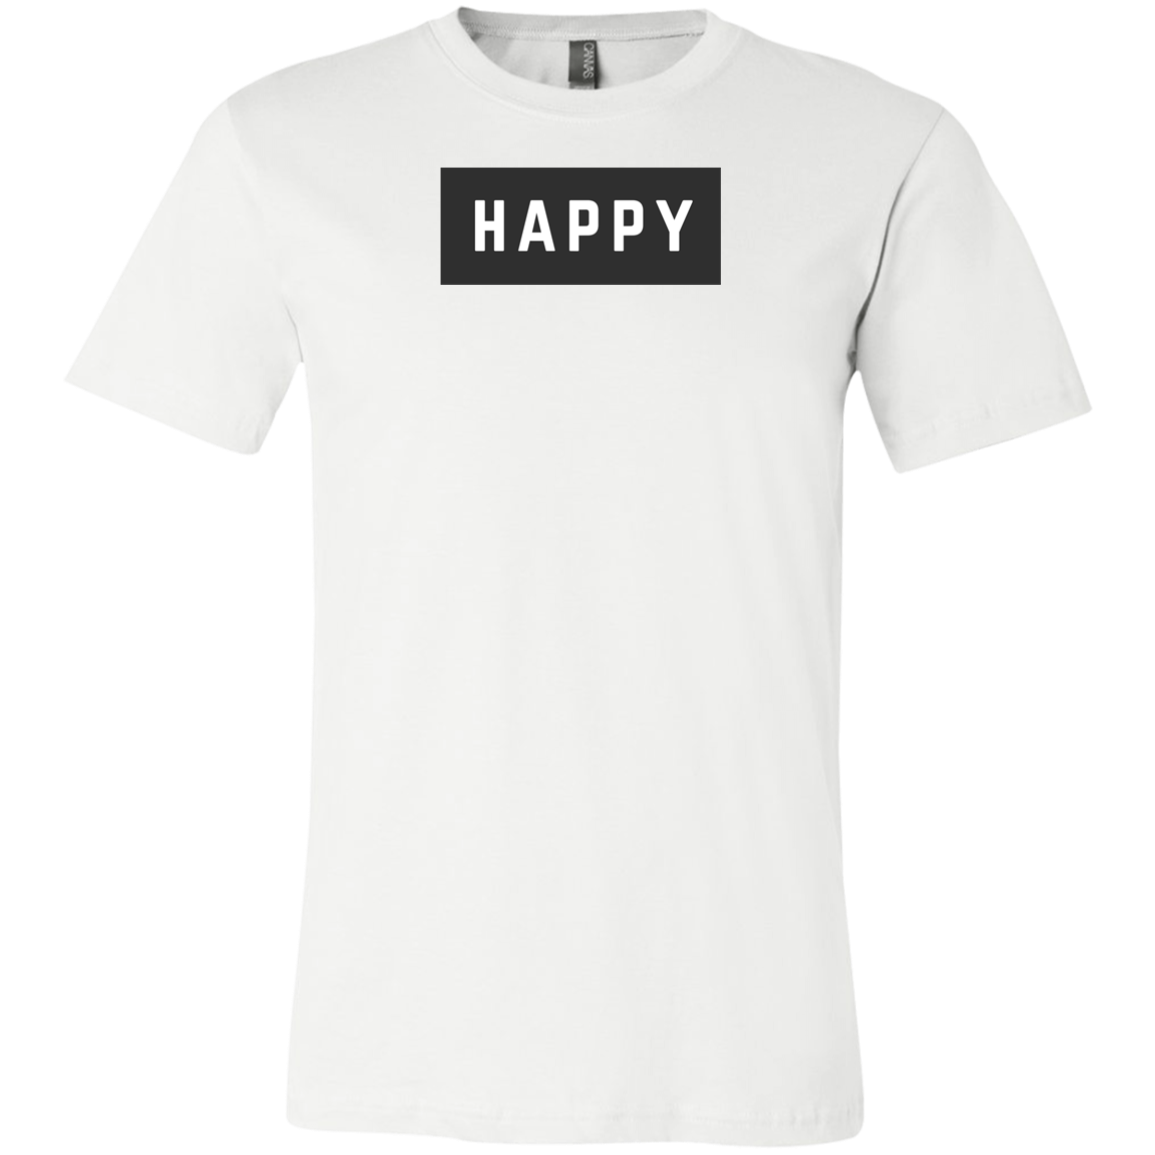 Happy Black and White Unisex Short-Sleeve T-Shirt